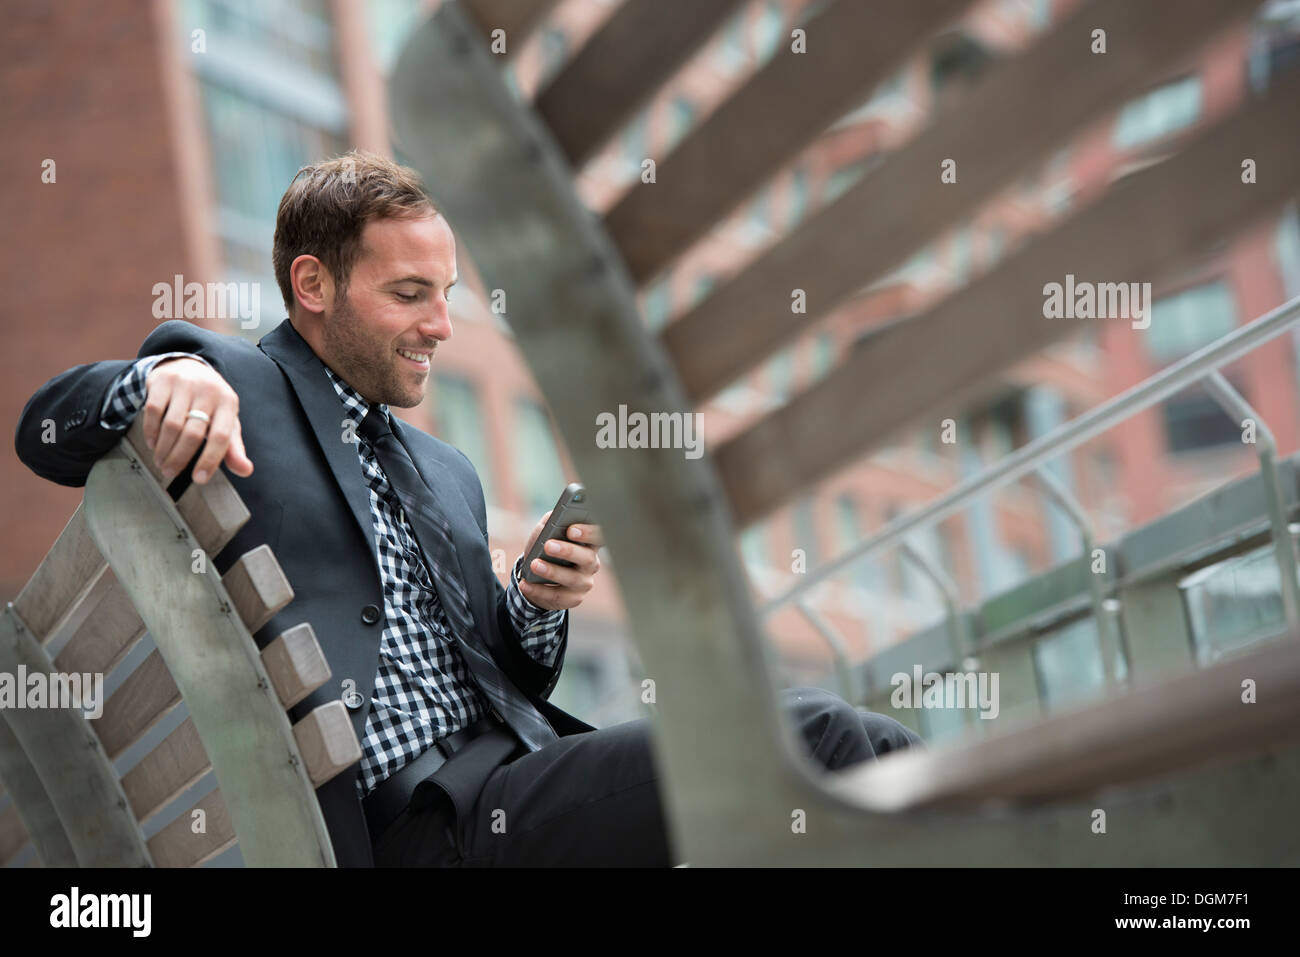 Business people. A man in a suit, sitting on a bench. Stock Photo